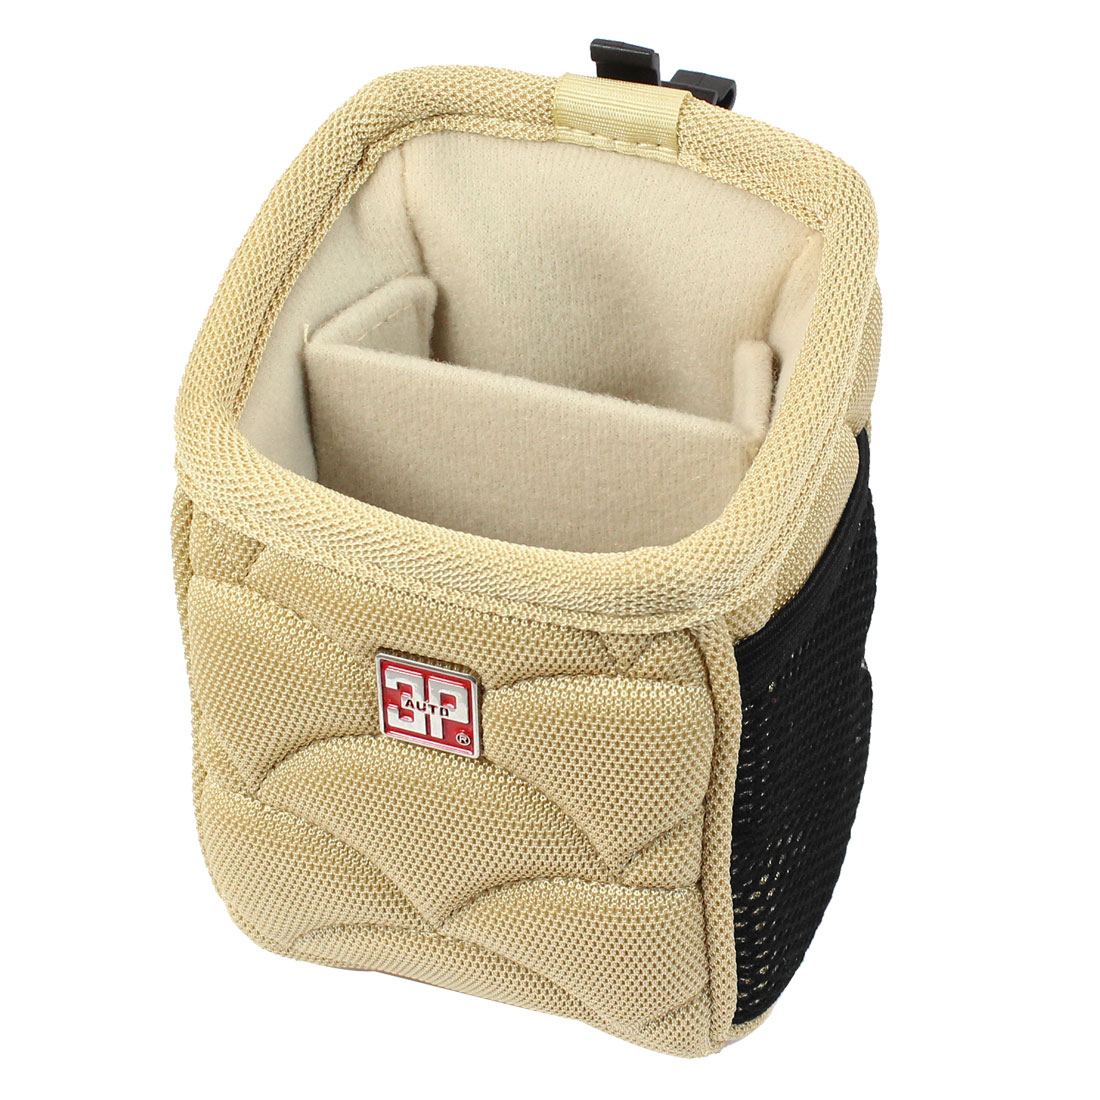 Car Auto Air Vent Mount 2 Comparments Cell Phone Pouch Holder Bag Beige